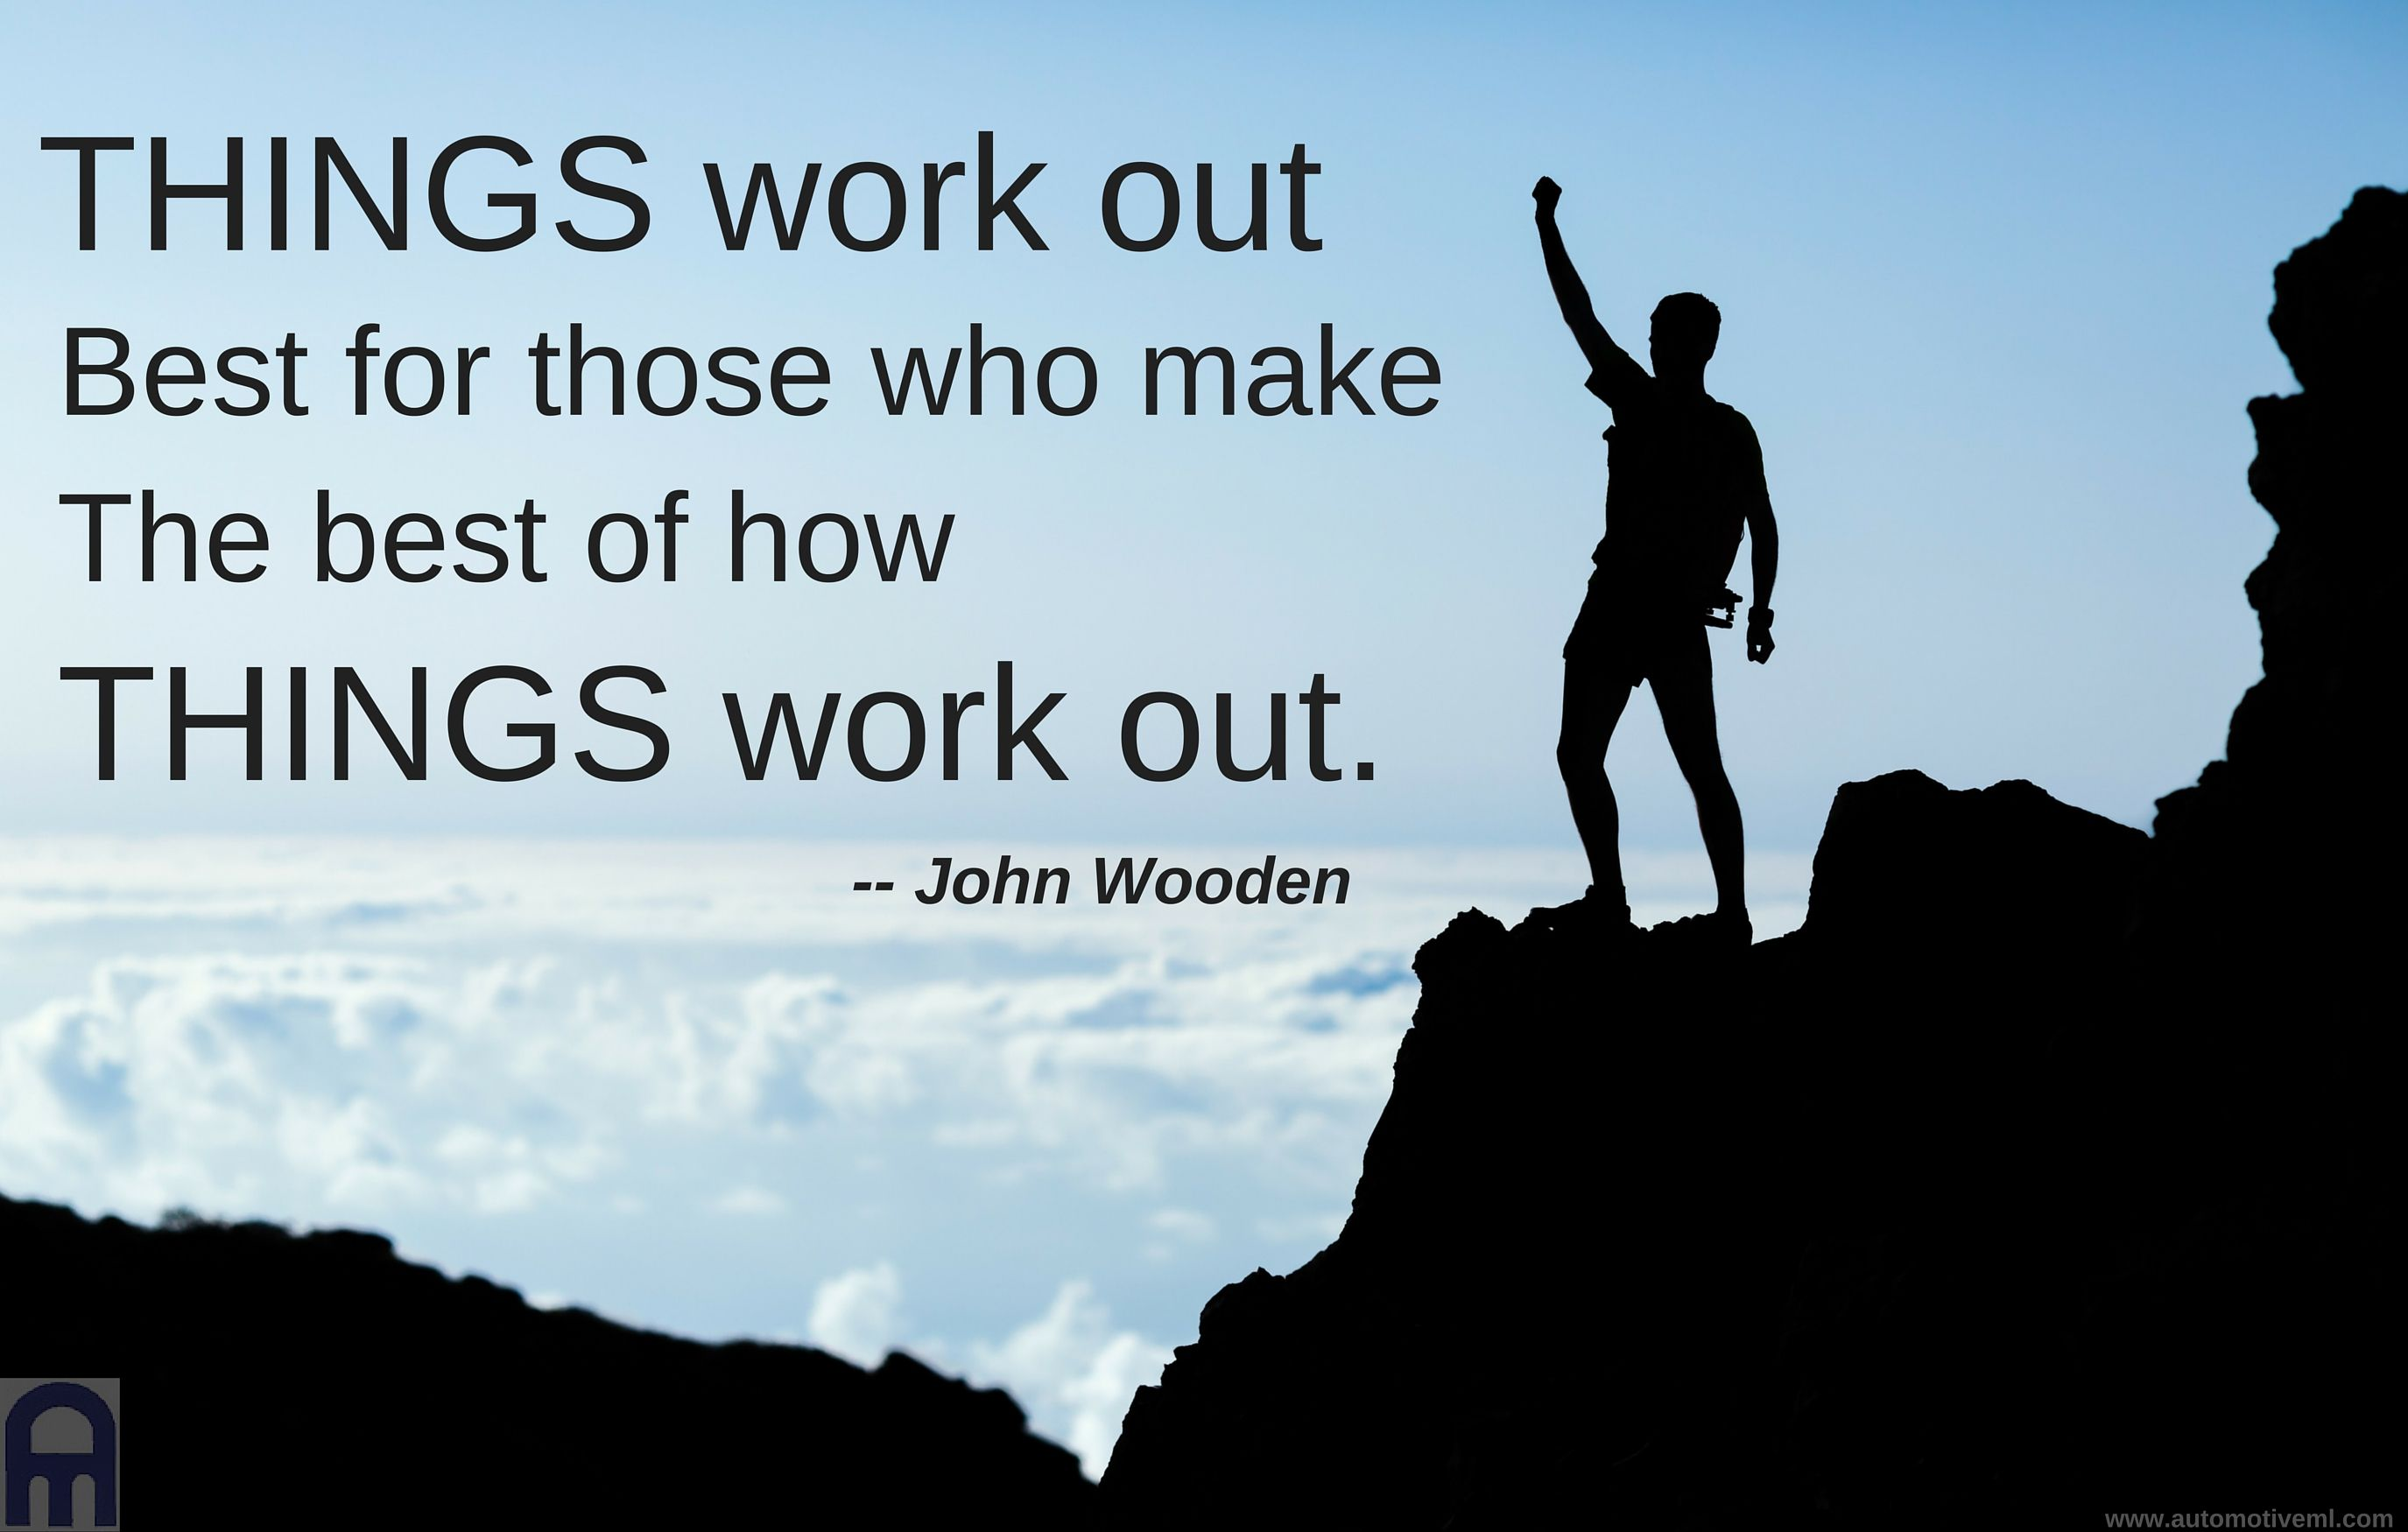 Things Work Out Best For Those Who Make The Best Of How Things